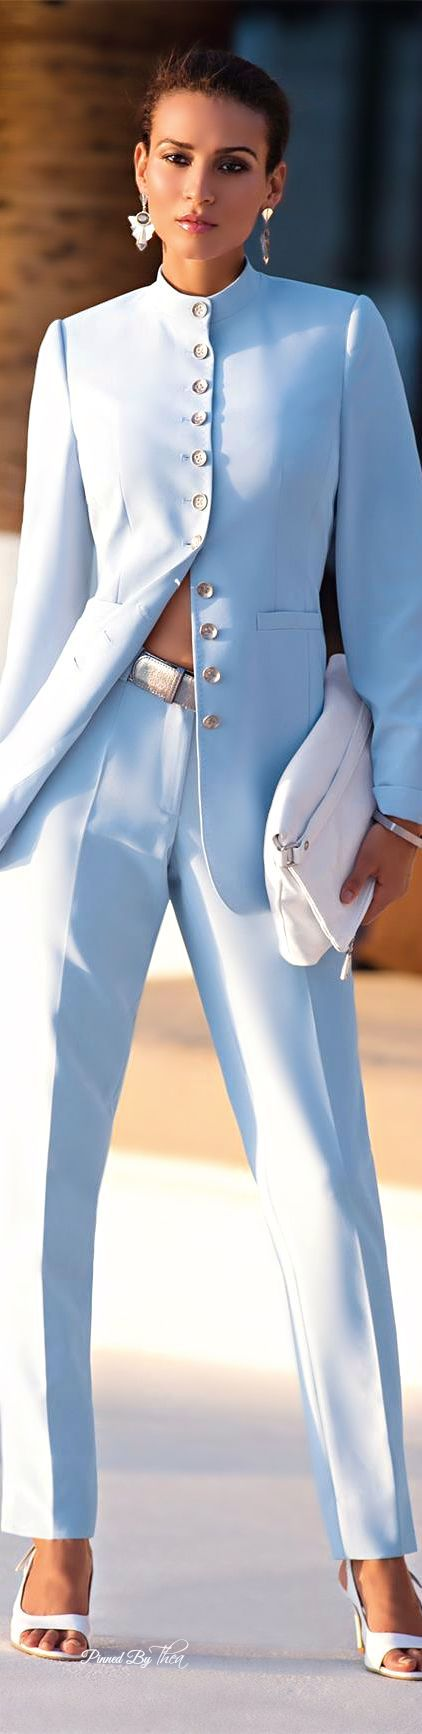 babyblue.quenalbertini: Soft Blue Couture |    Ecstasy Models ...